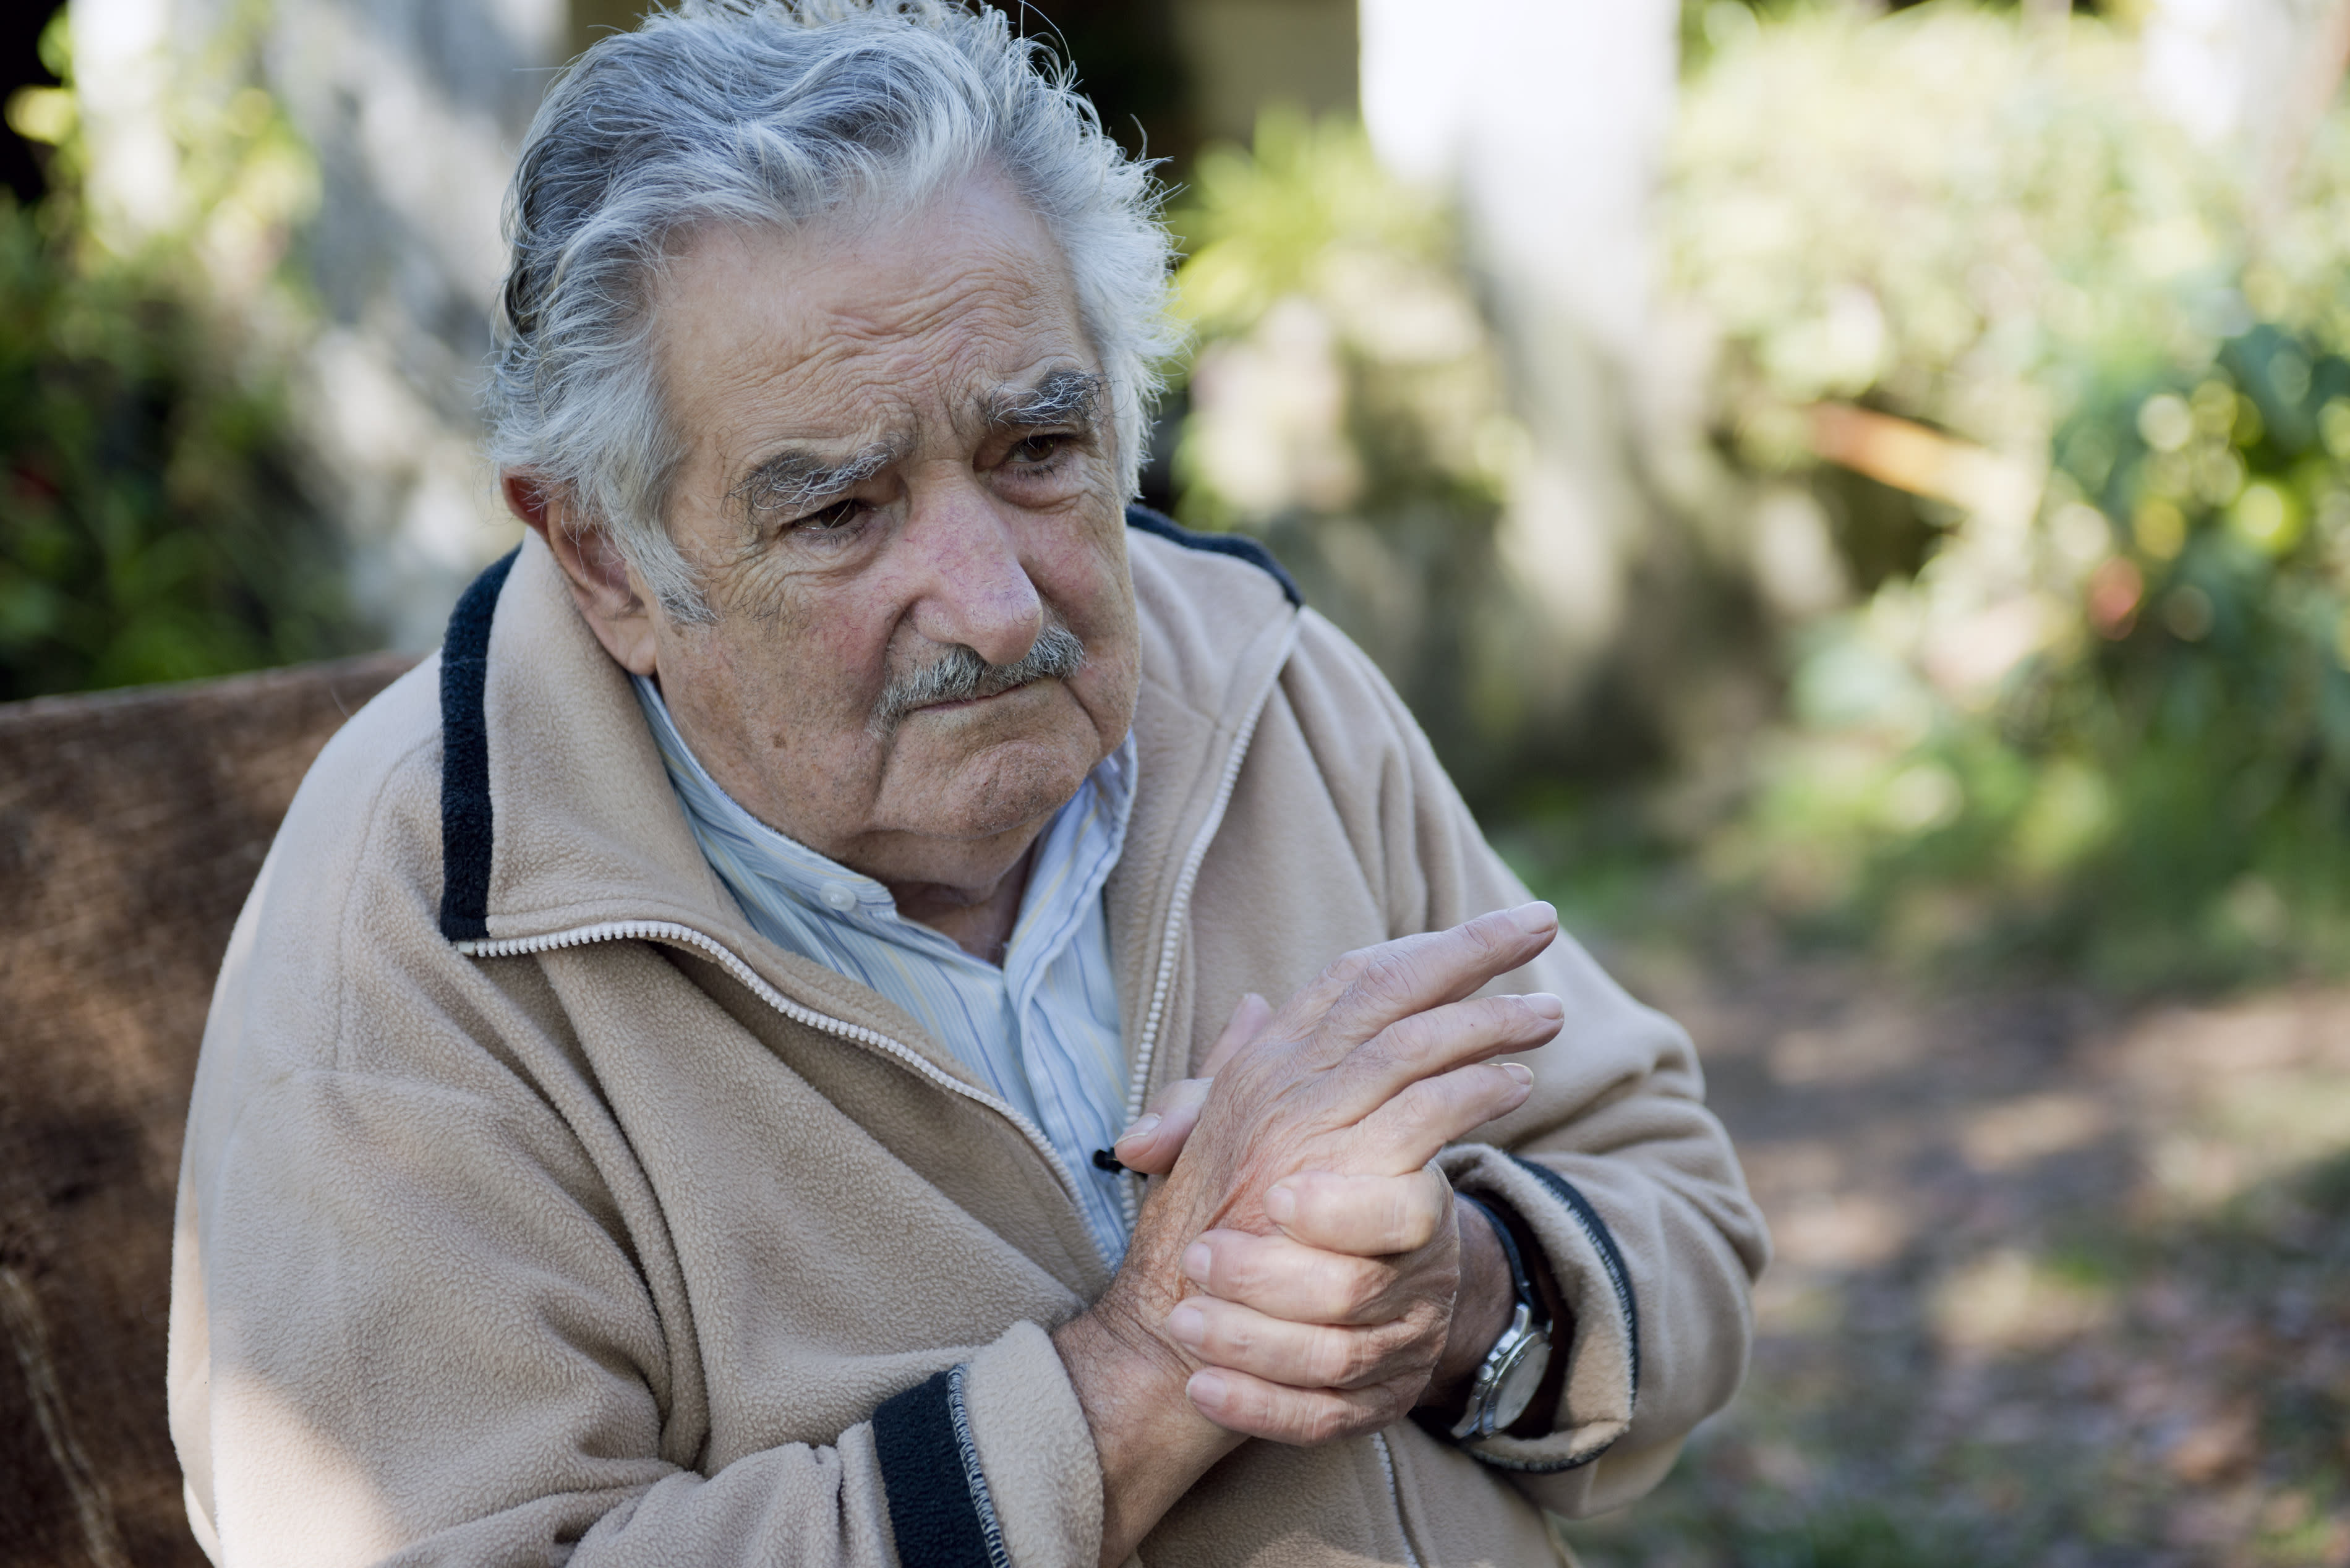 """Uruguay's President Jose Mujica pauses during an interview at his home on the outskirts of Montevideo, Uruguay, Friday, May 2, 2014. Mujica says the country's legal marijuana market will be much less permissive with drug users. """"We don't go along with the idea that marijuana is benign, poetic and surrounded by virtues. No addiction is good,"""" he said. In an exclusive Associated Press interview just before releasing his country's long-awaited marijuana rules, the former leftist guerrilla predicted that many will call him an """"old reactionary"""" once they see the fine print. (AP Photo/Matilde Campodonico)"""